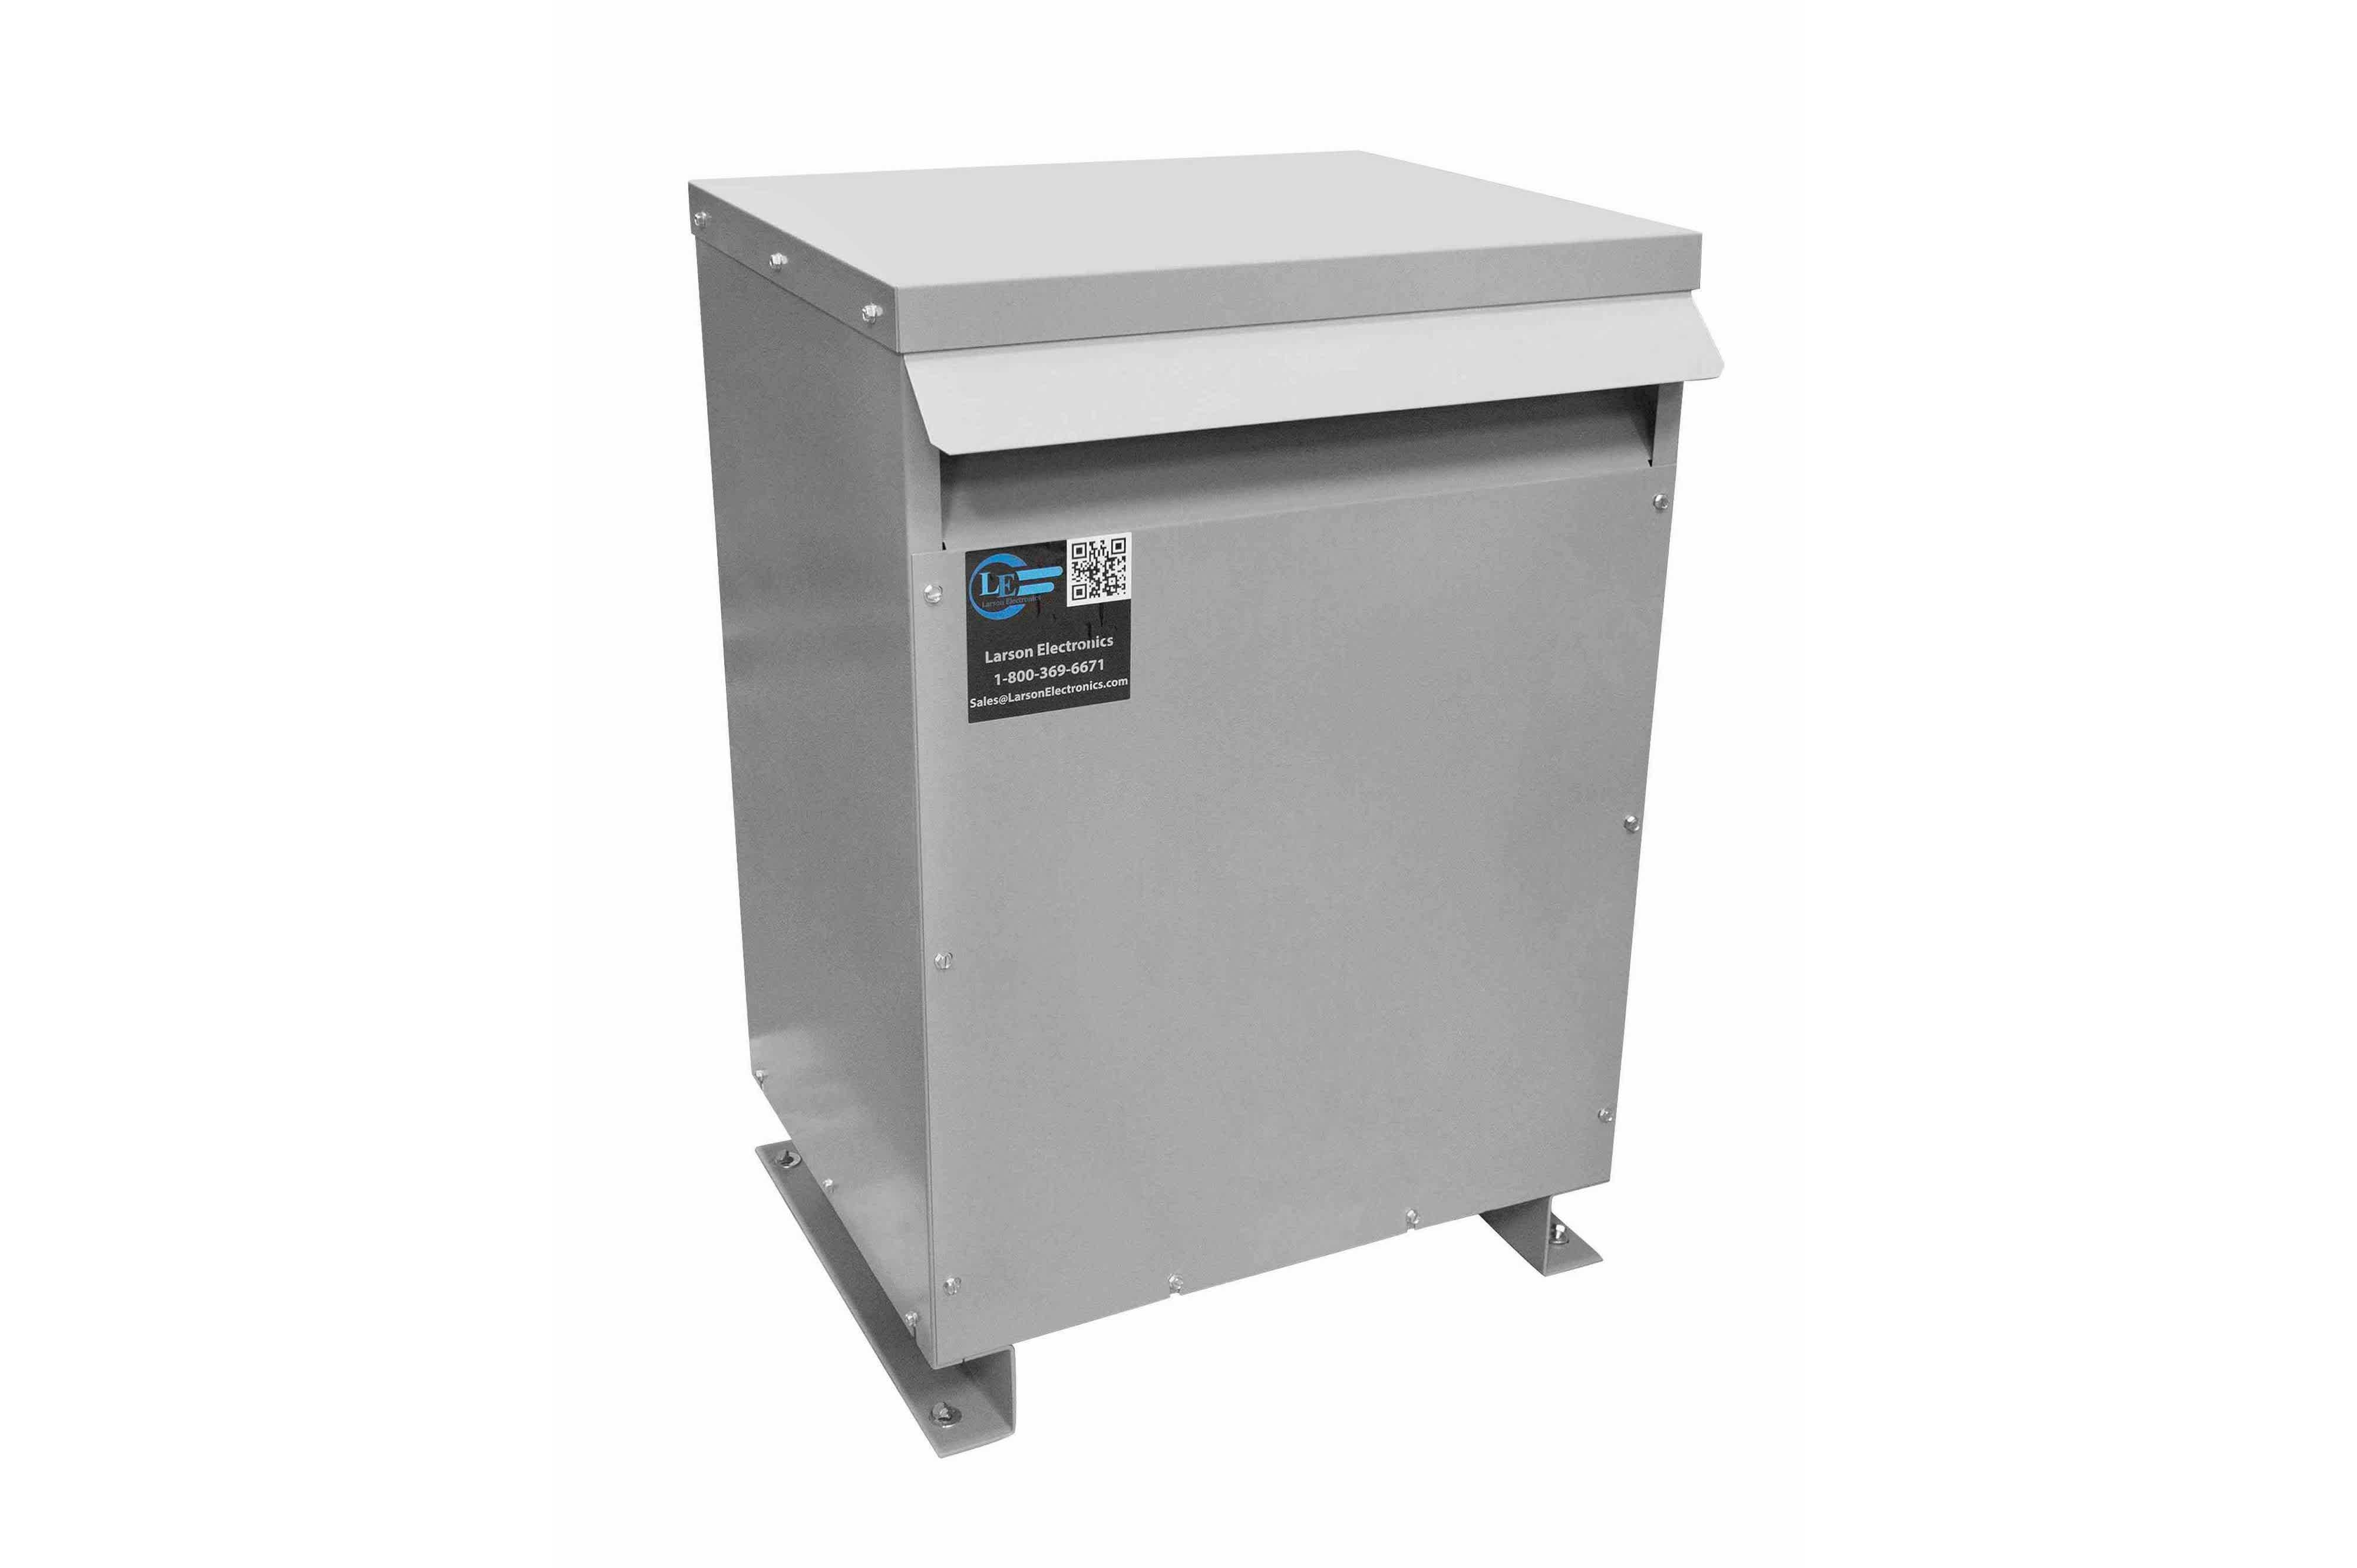 137.5 kVA 3PH Isolation Transformer, 380V Delta Primary, 208V Delta Secondary, N3R, Ventilated, 60 Hz